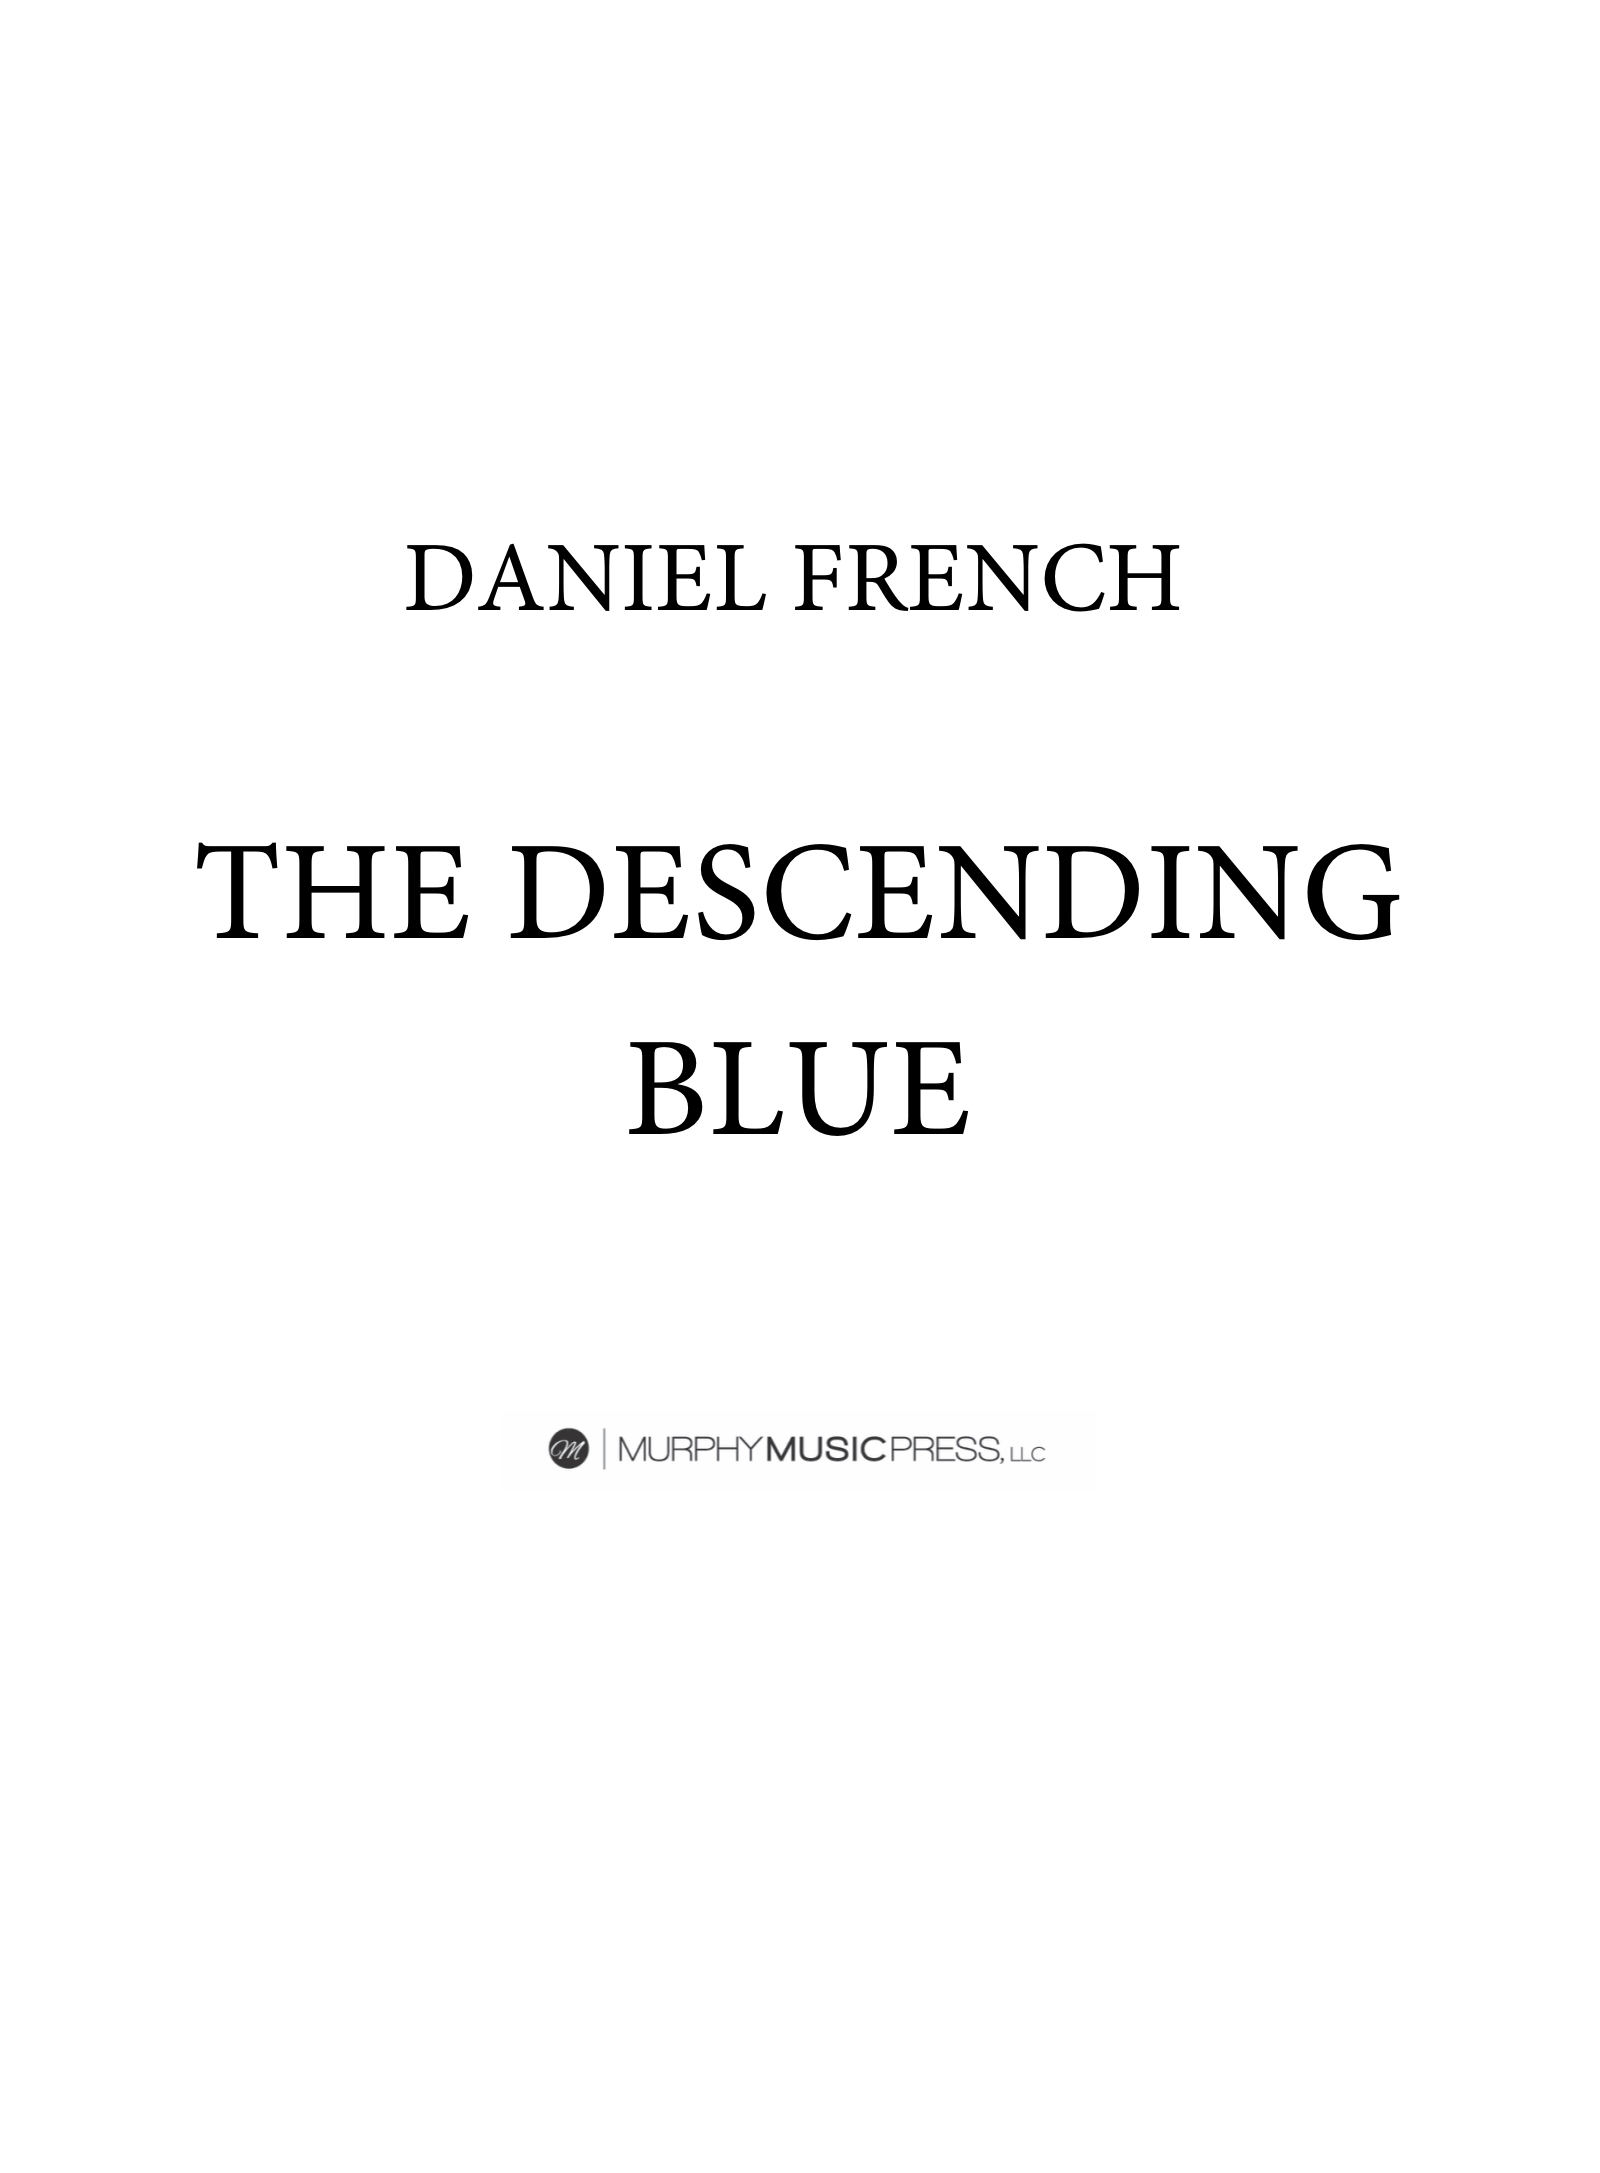 The Descending Blue by Daniel French